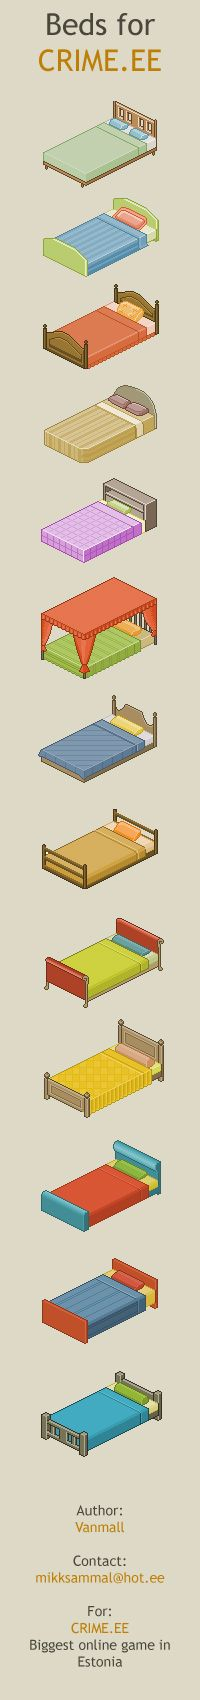 Beds for Crime.ee by vanmall.deviantart.com on @deviantART